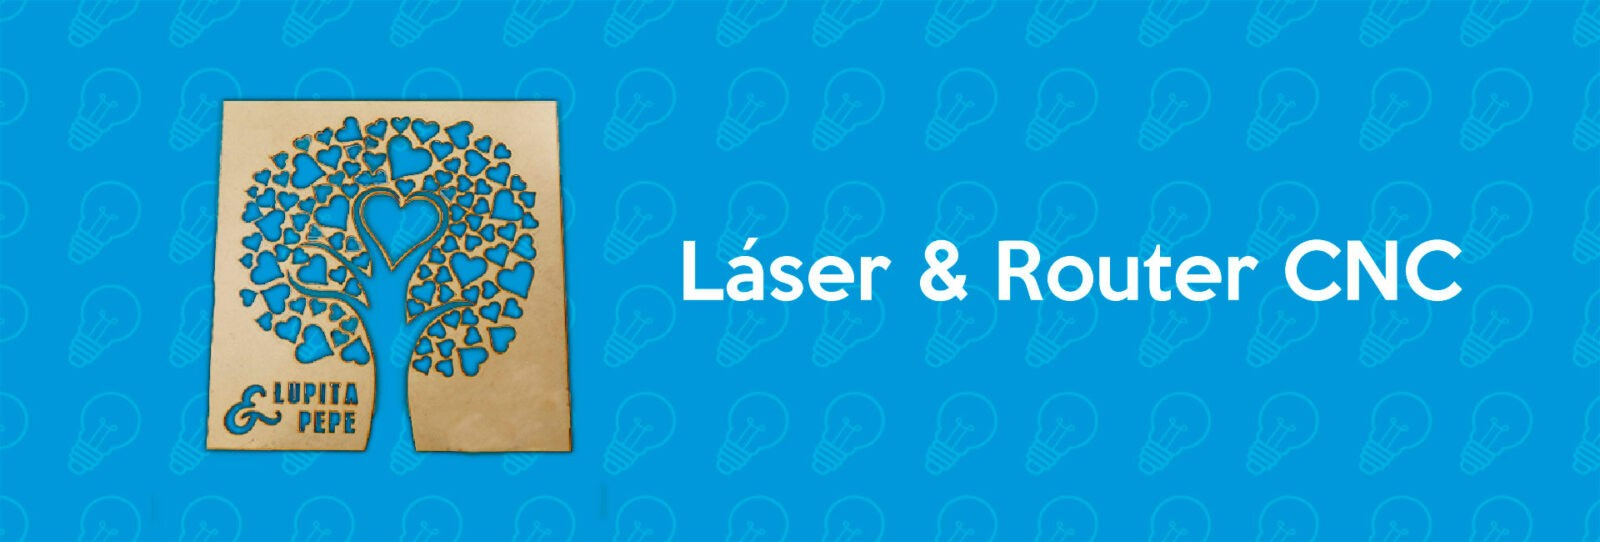 Laser & Router